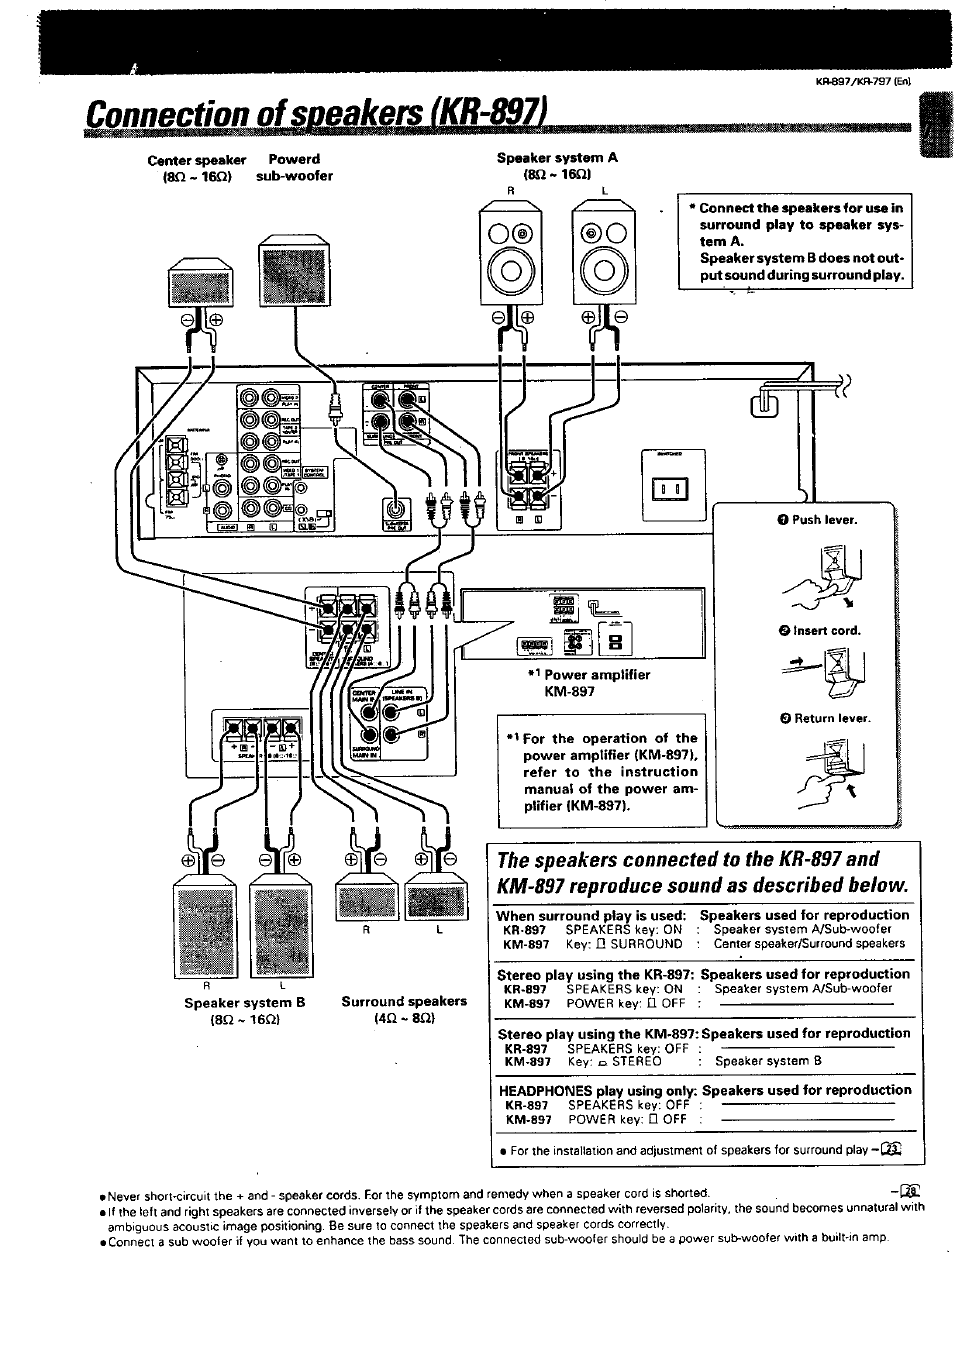 Connection of speakers (kr-897) | Kenwood KR-897 User Manual | Page 7 / 32